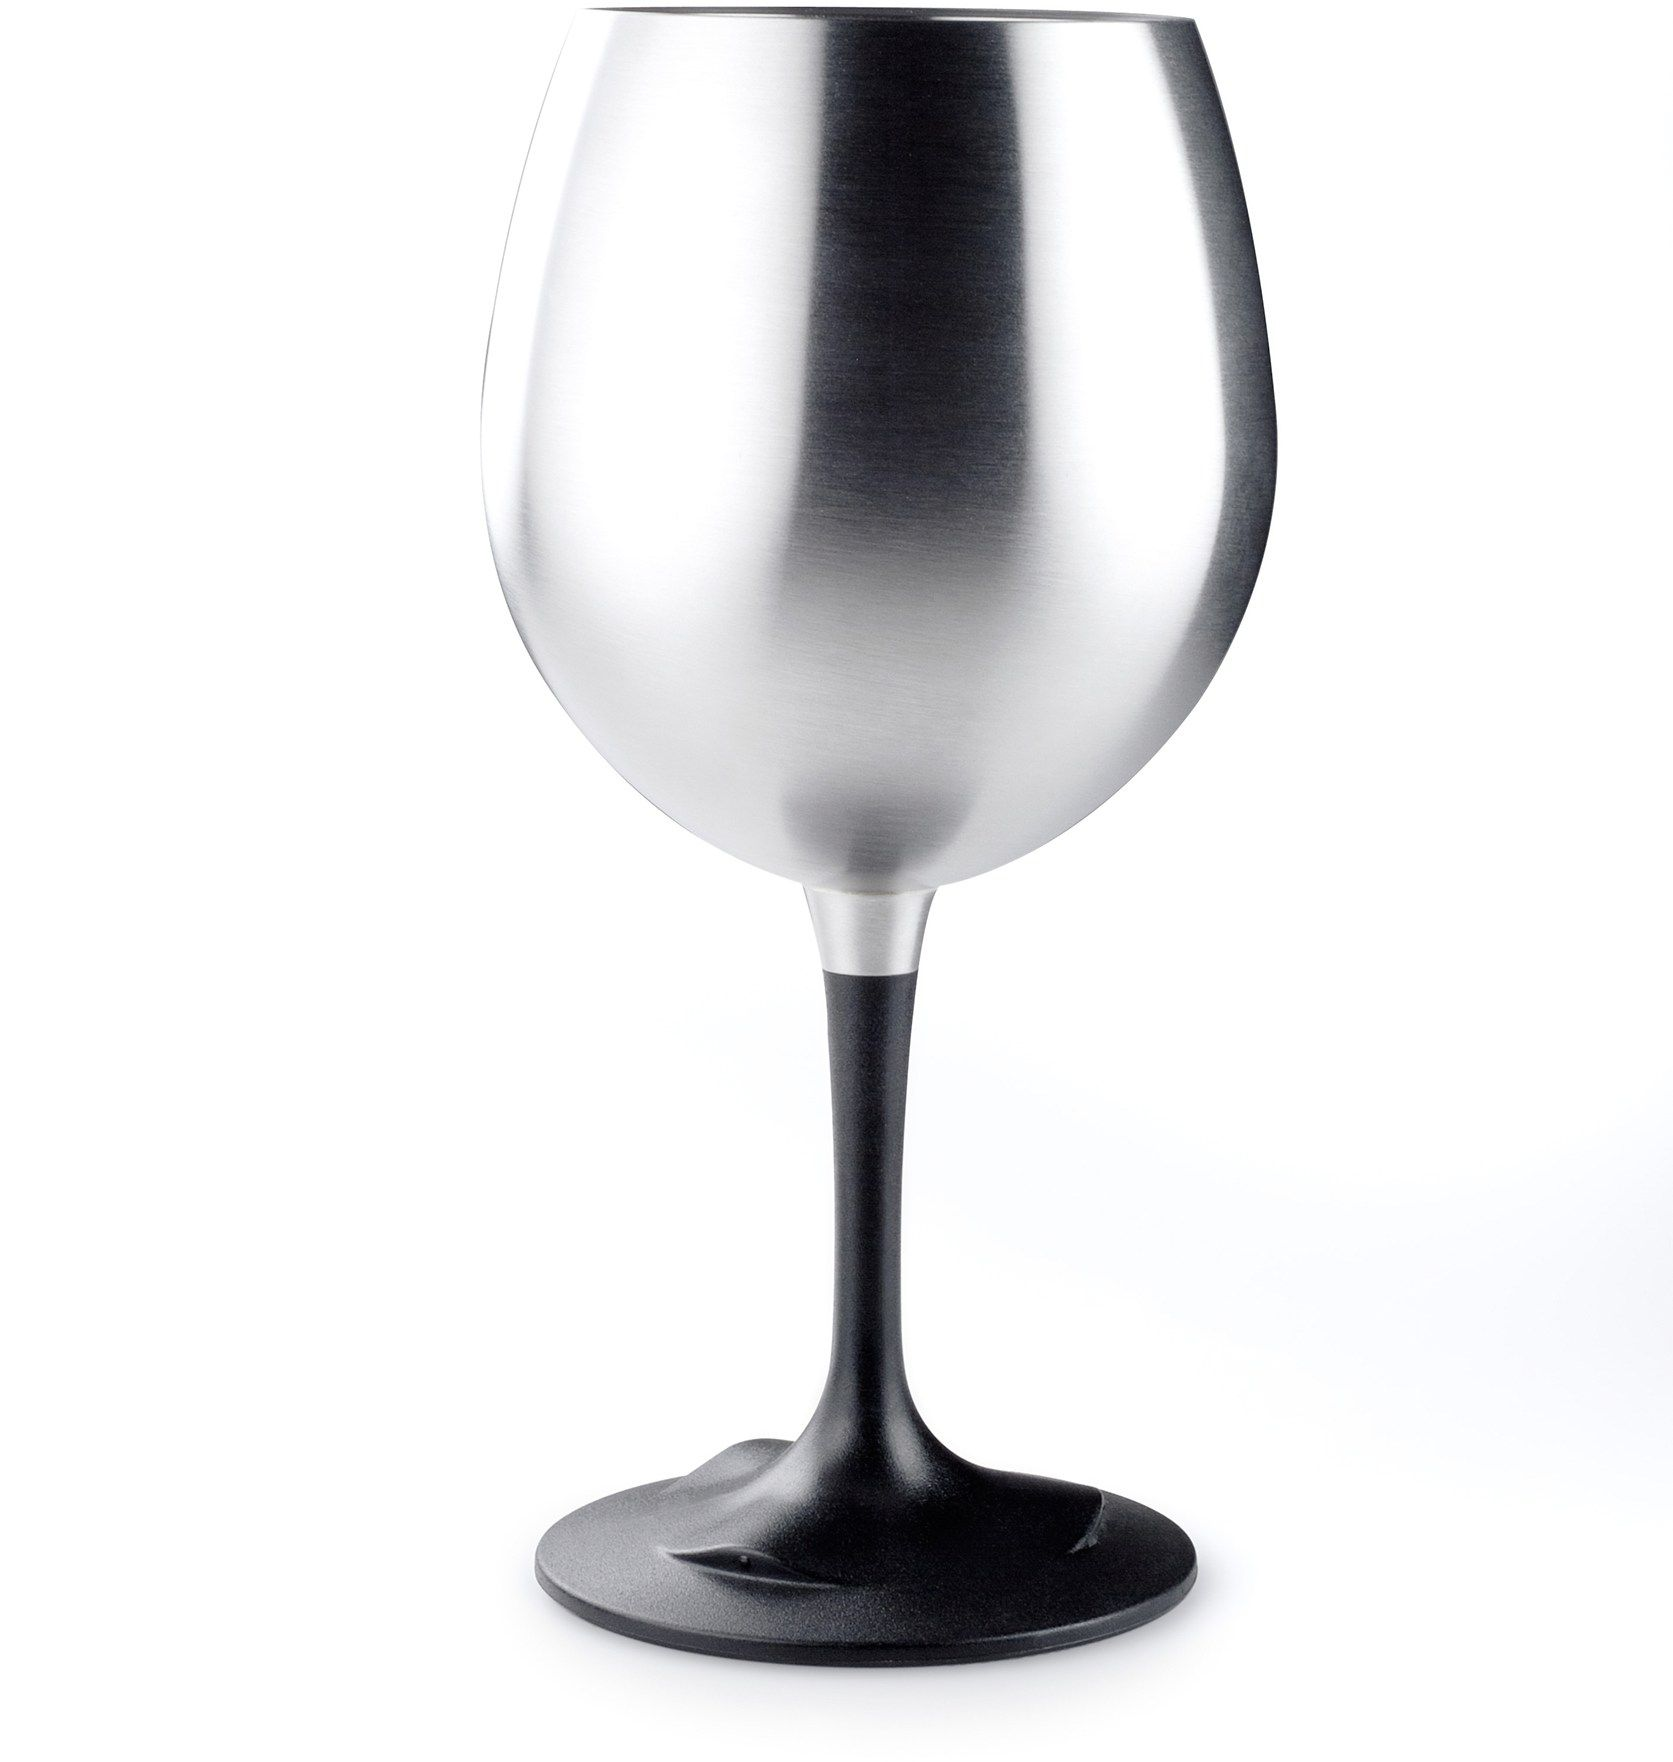 GSI Outdoors Stainless-Steel Nesting Red Wine Glass at REI.com ...